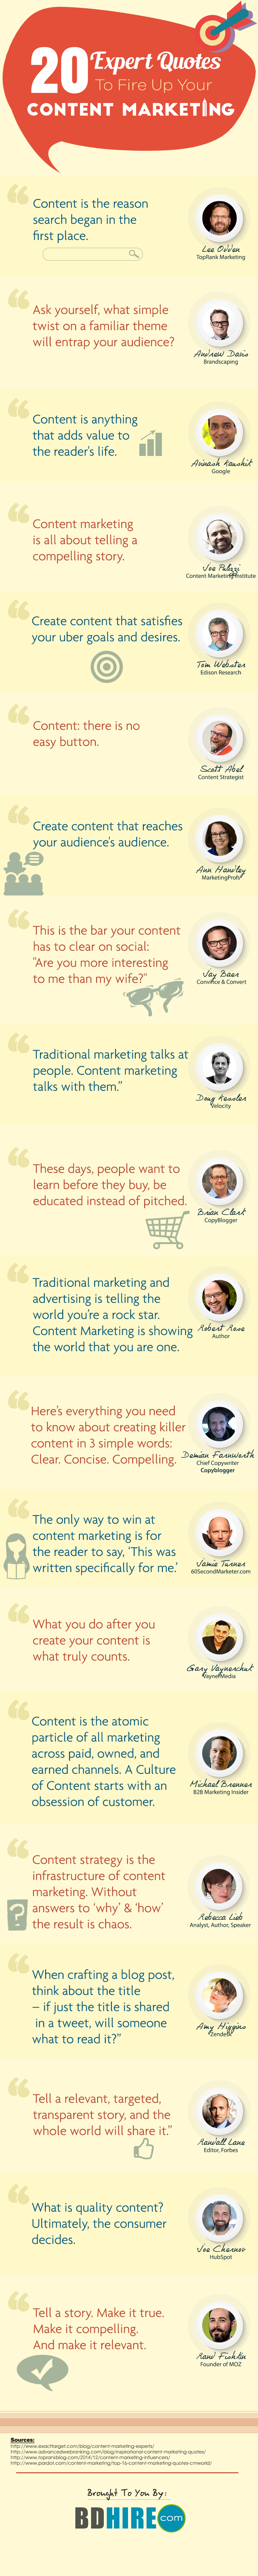 content marketing quotes